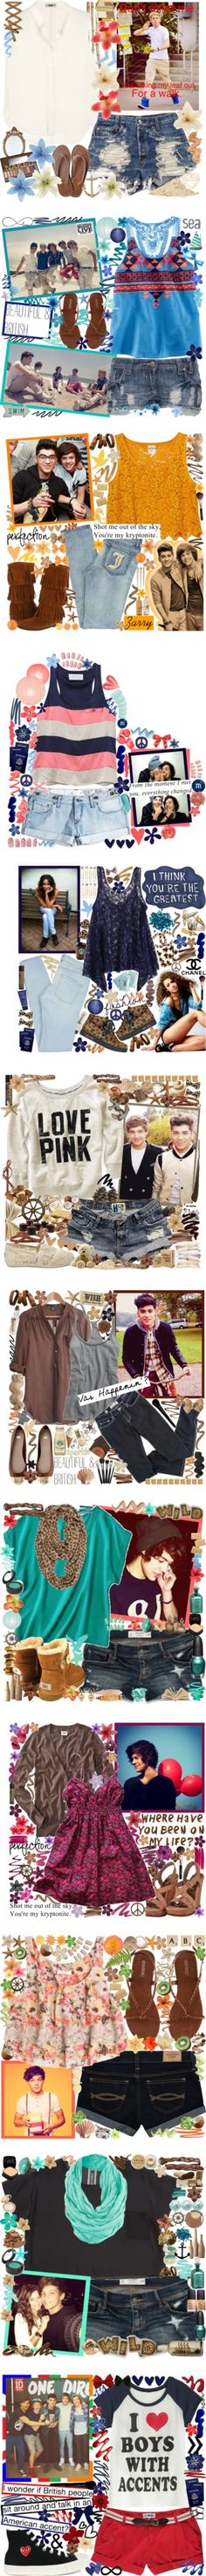 One Direction inspired outfits One Direction Fashion, One Direction Outfits, I Love One Direction, Celebrity Outfits, Celebrity Style, Celebrity News, Fashion Beauty, Artist Fashion, Polyvore Outfits